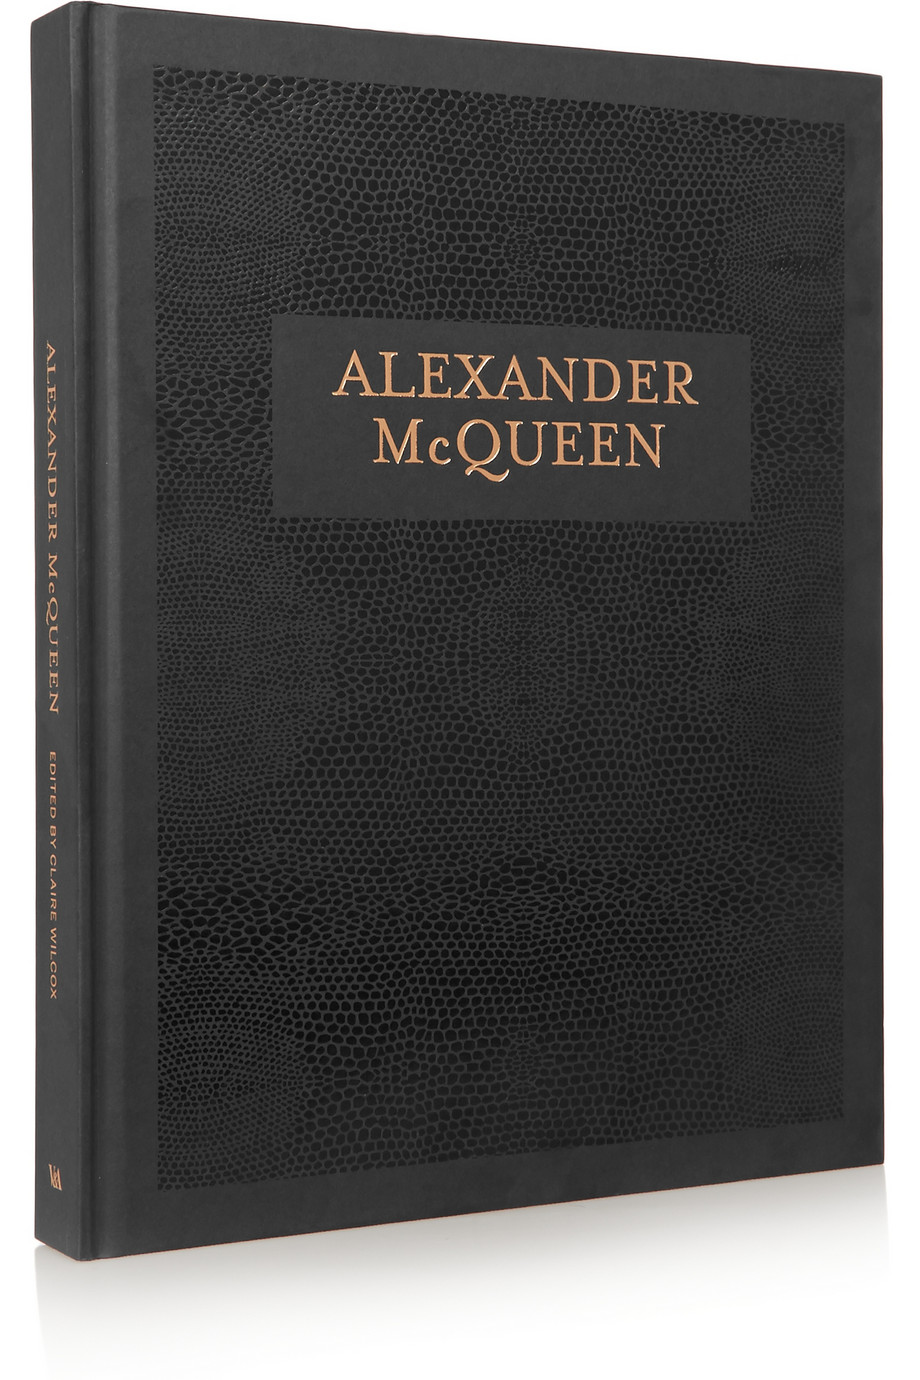 Caffe Table Books Alexander McQueen edited by Claire Wilcox hardcover book 1